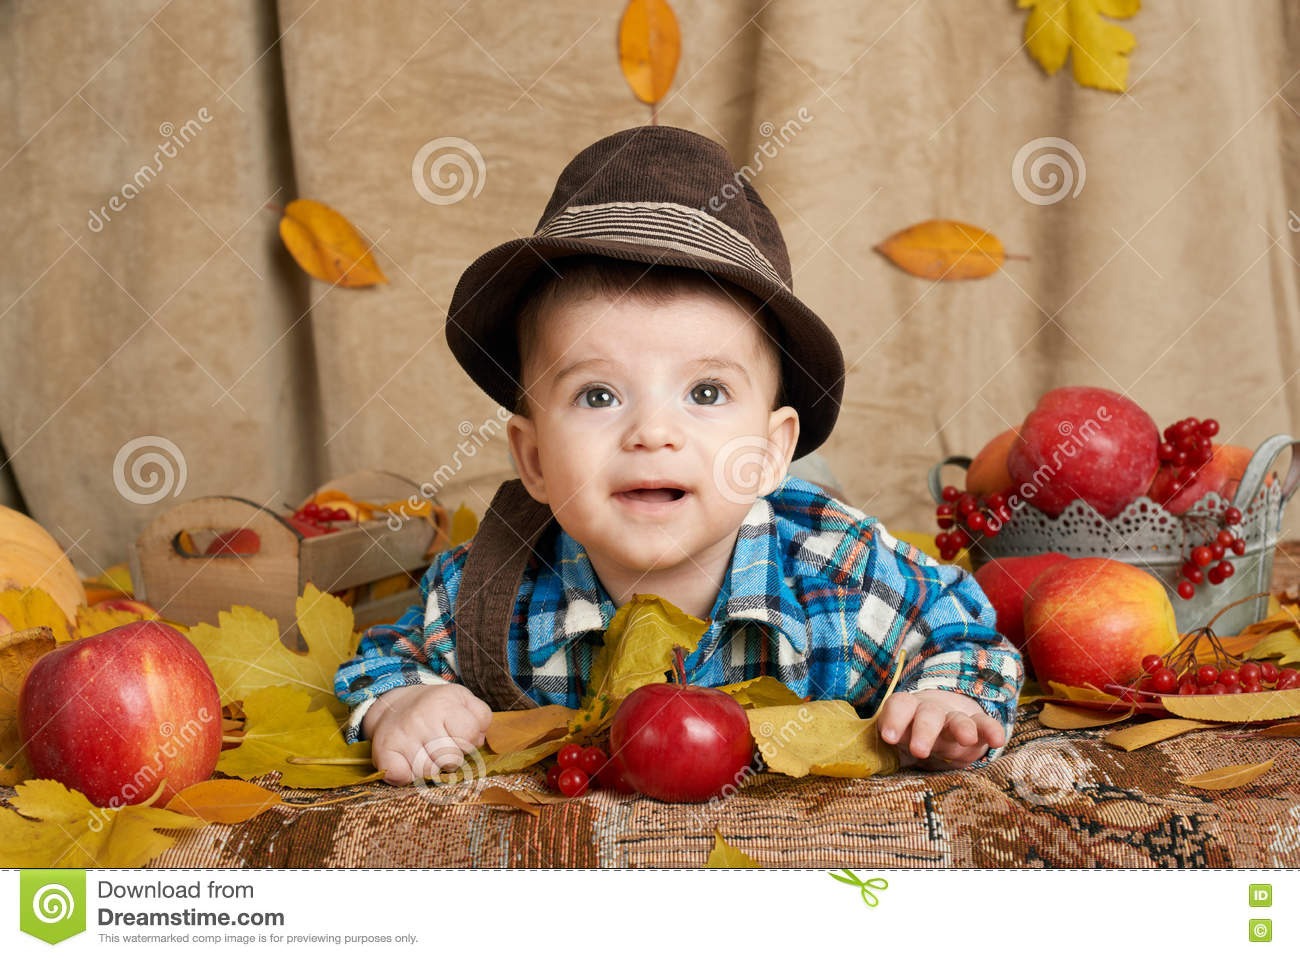 Autumn little child boy lie on yellow fall leaves, apples, pumpkin and decoration on textile